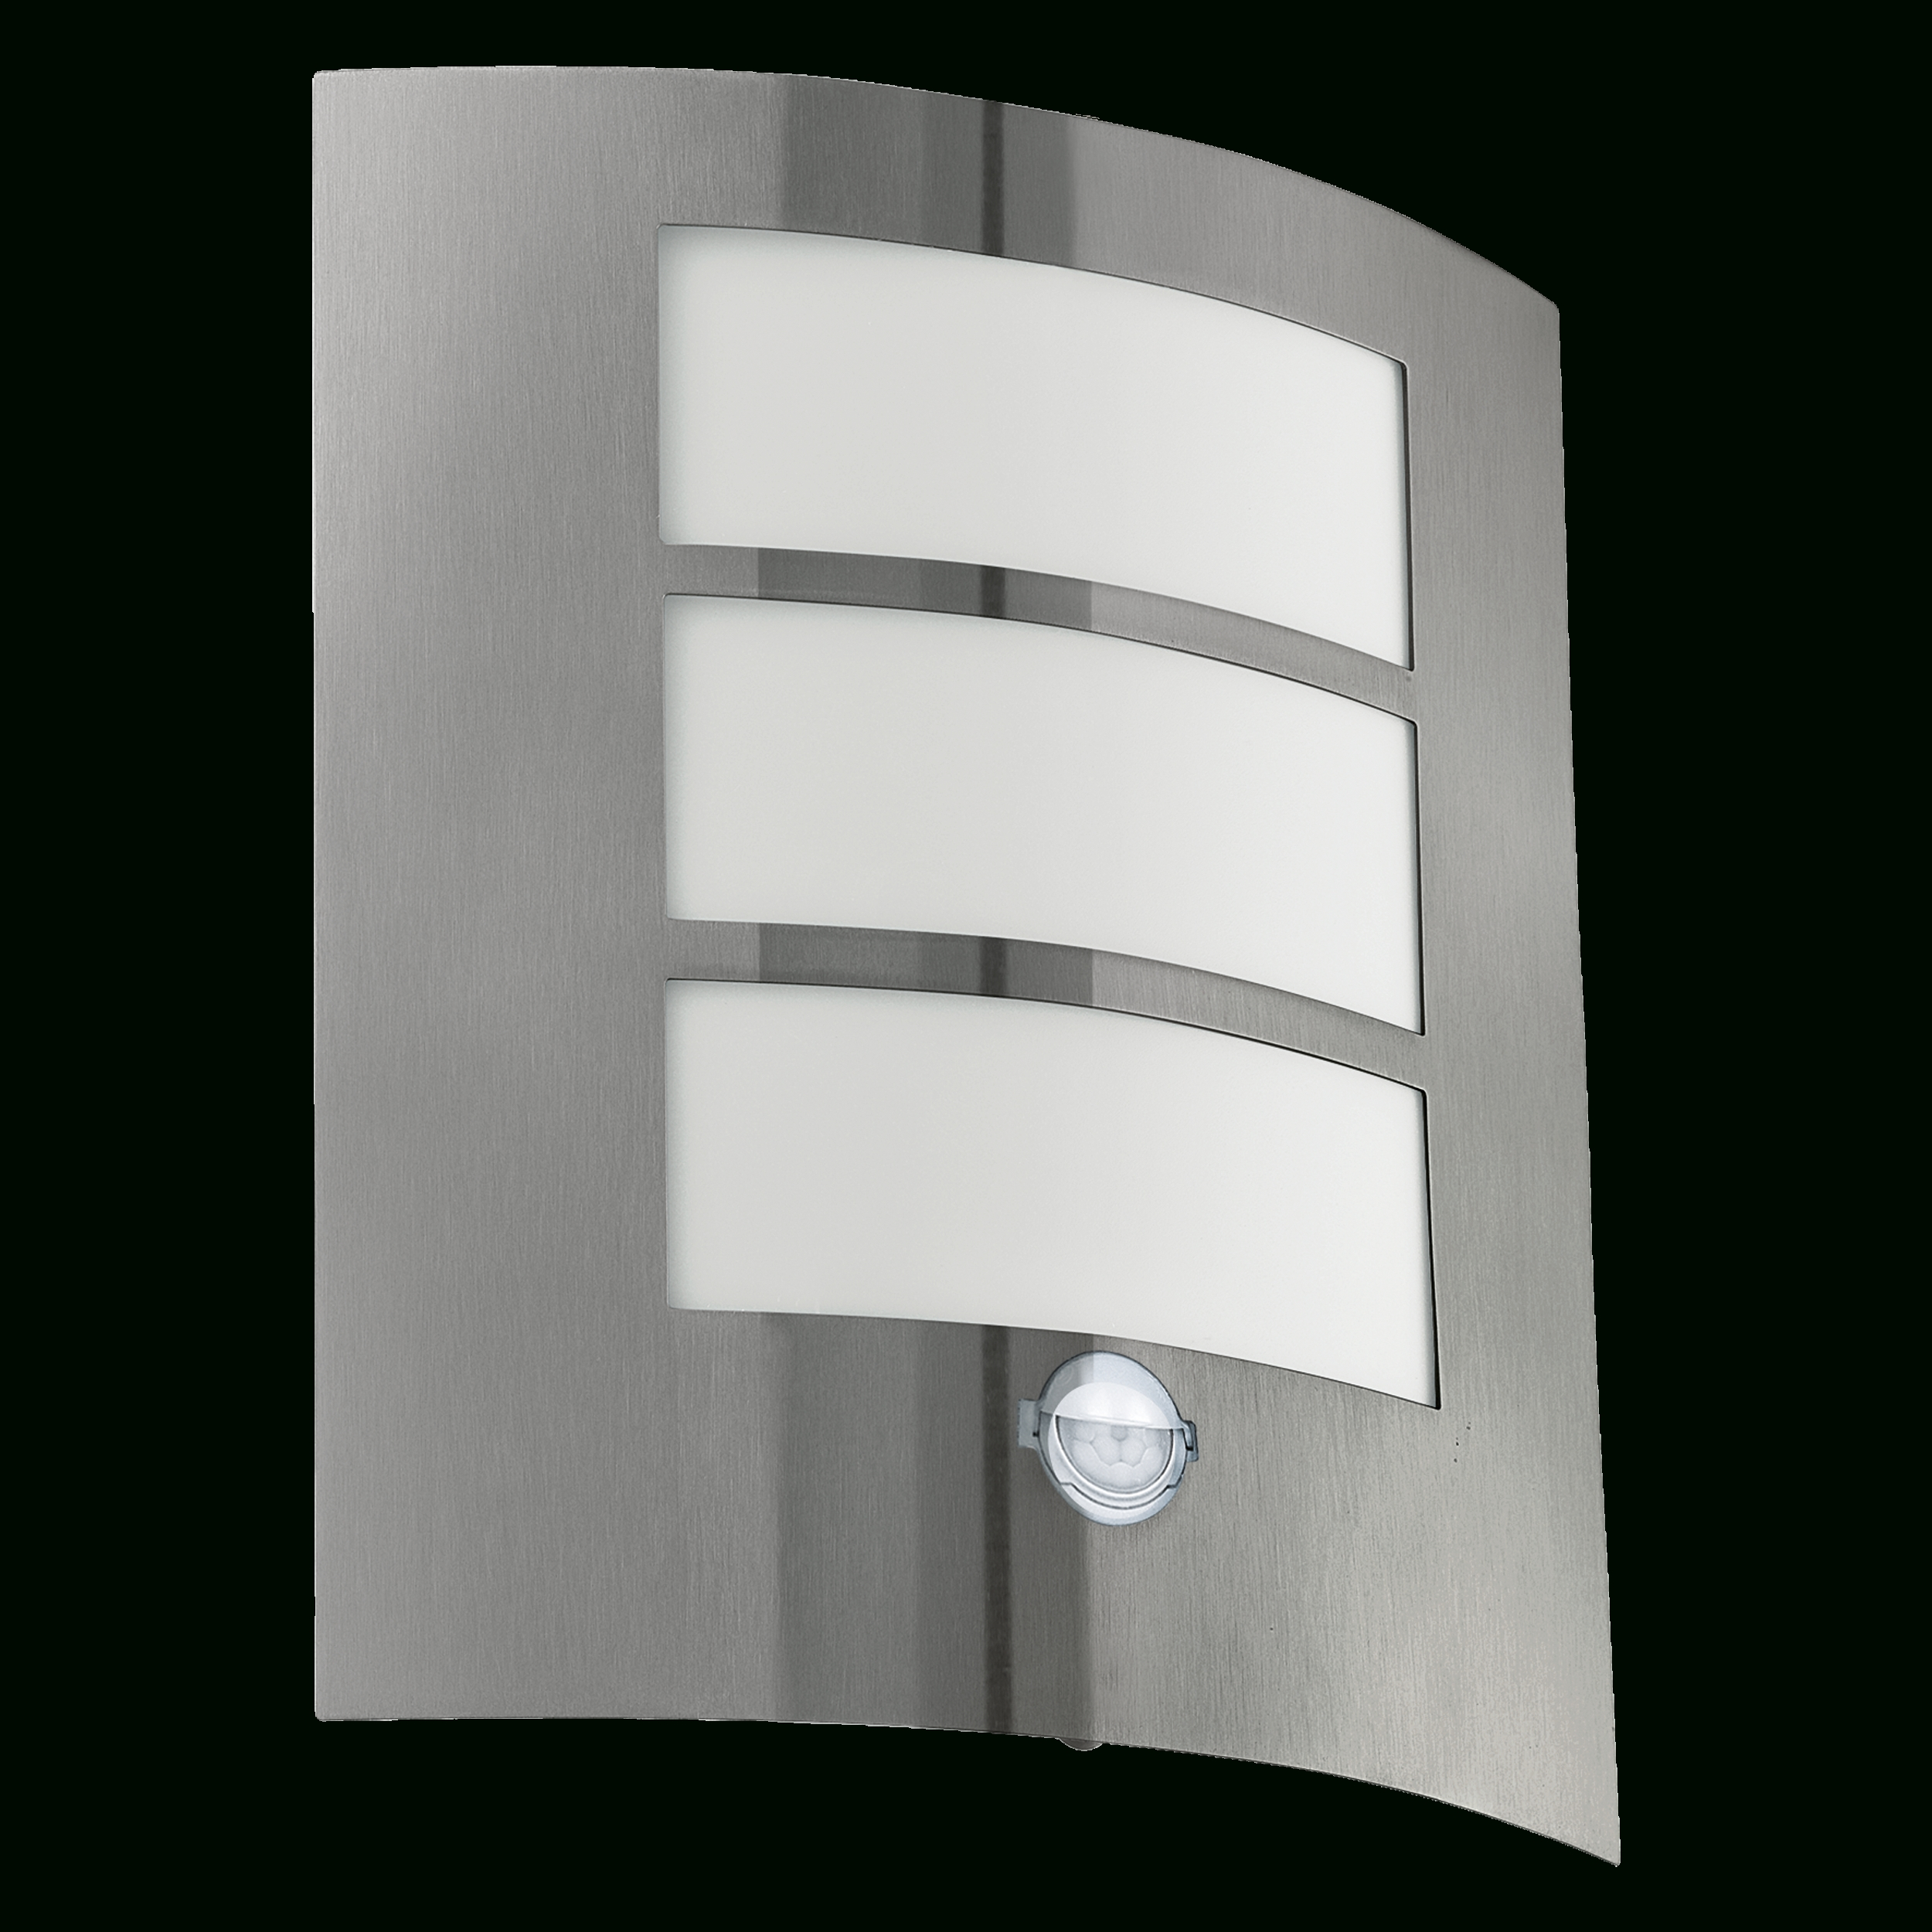 88142 / City / Outdoor Lighting / Main Collections / Products – Eglo Intended For Eglo Outdoor Lighting (#4 of 15)